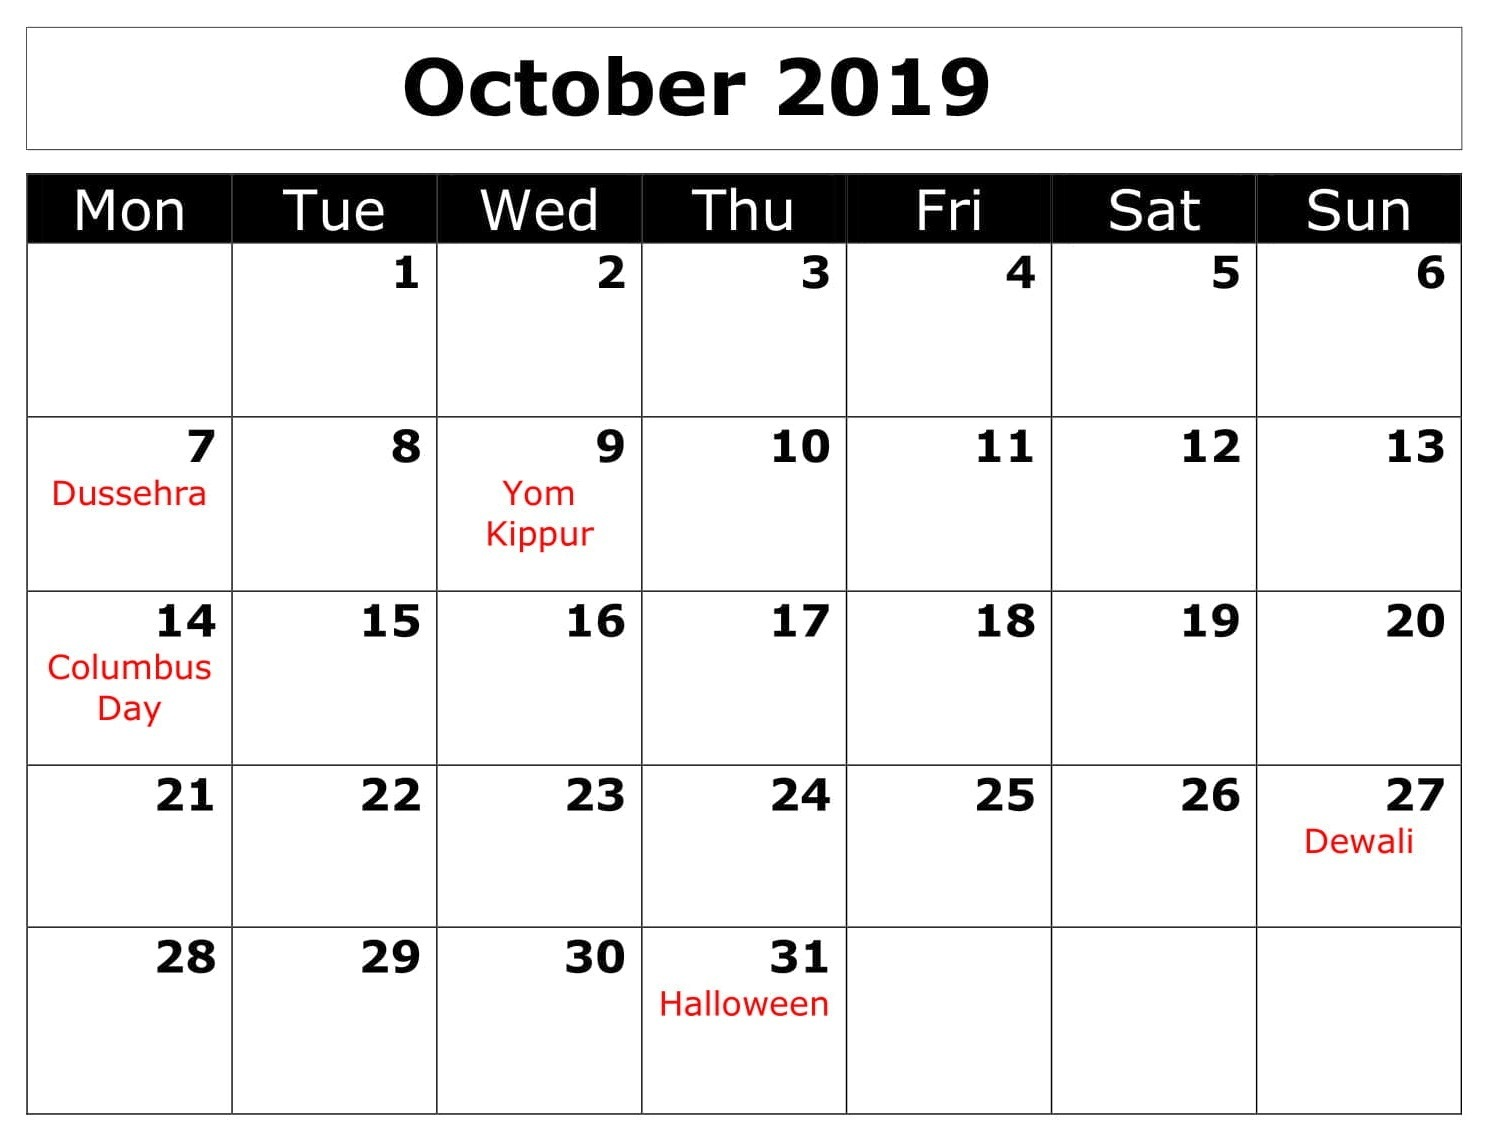 October 2019 Monthly Calendar With Holidays